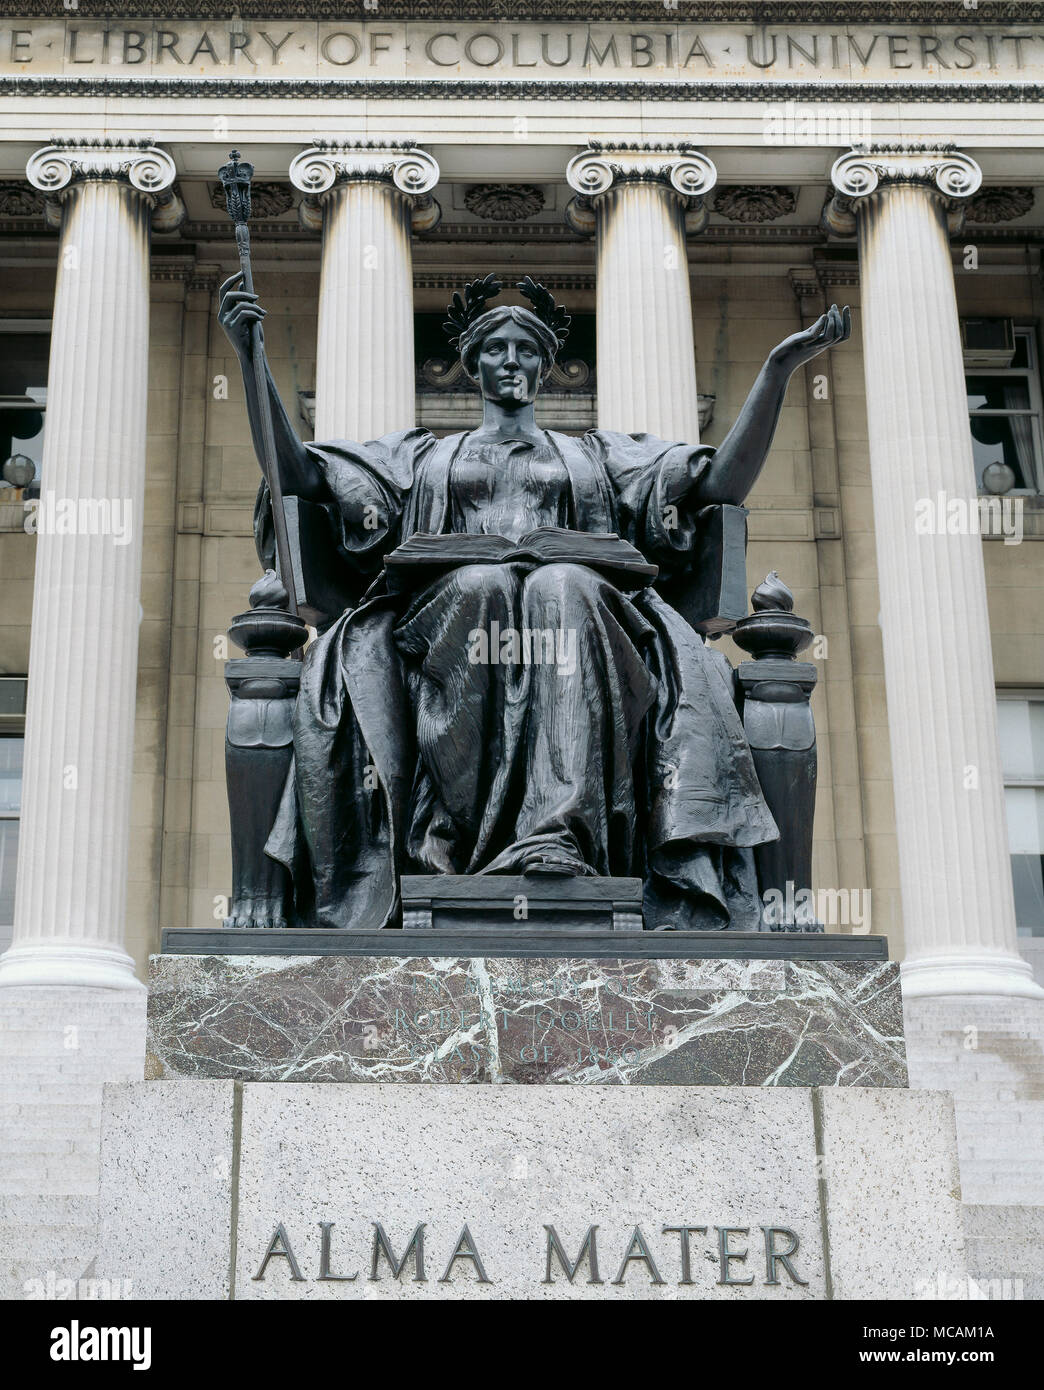 Alma Mater Is The Name Given To A Sculpture Of The Goddess Athena By